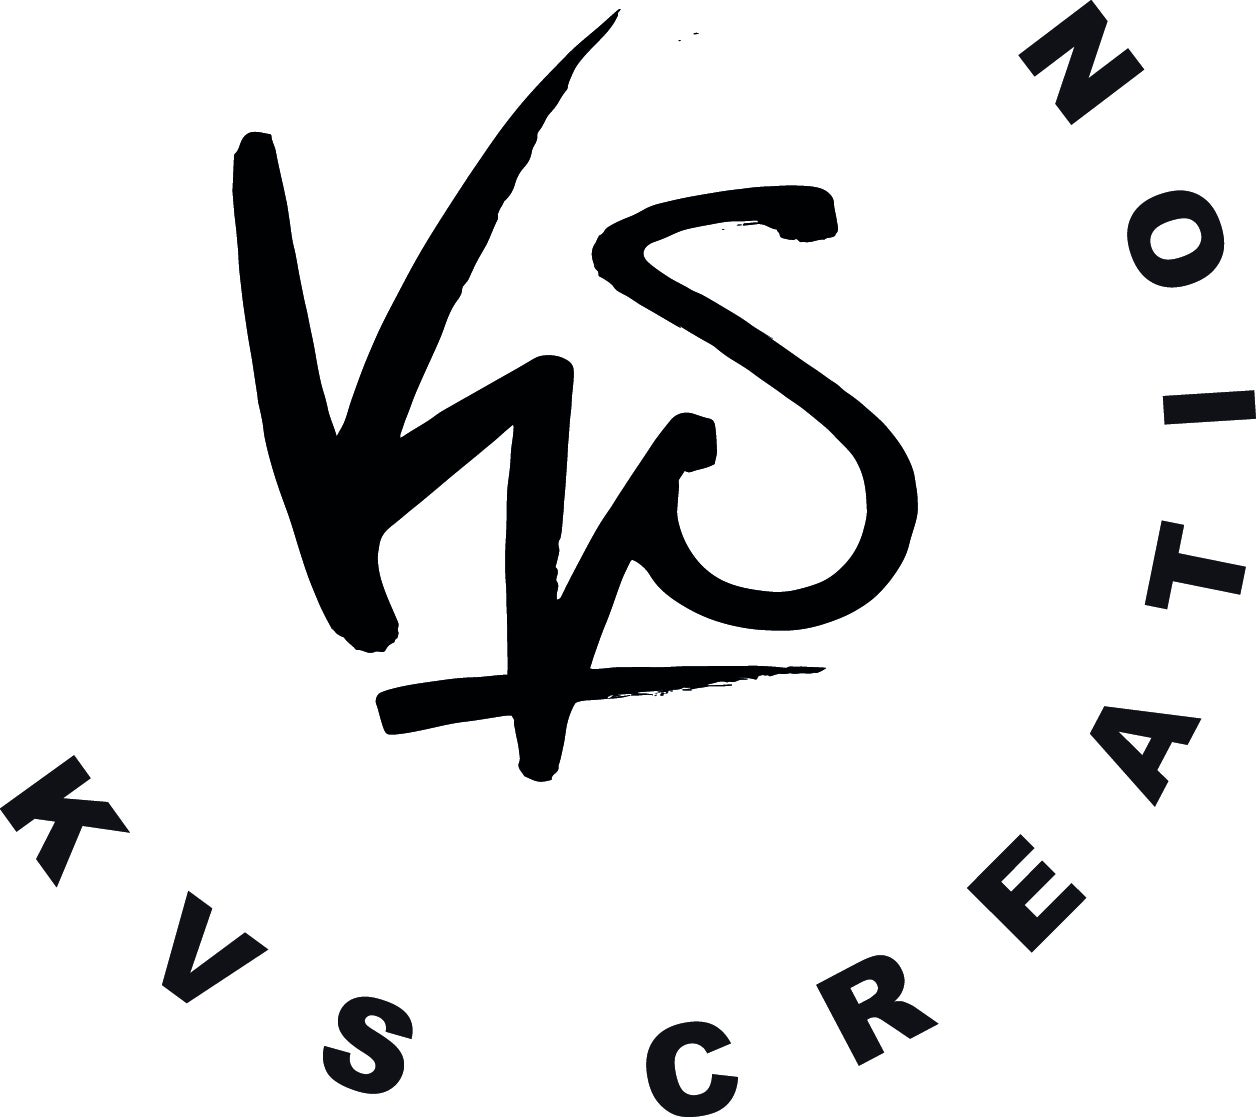 KVS_logo_creation_black.jpg